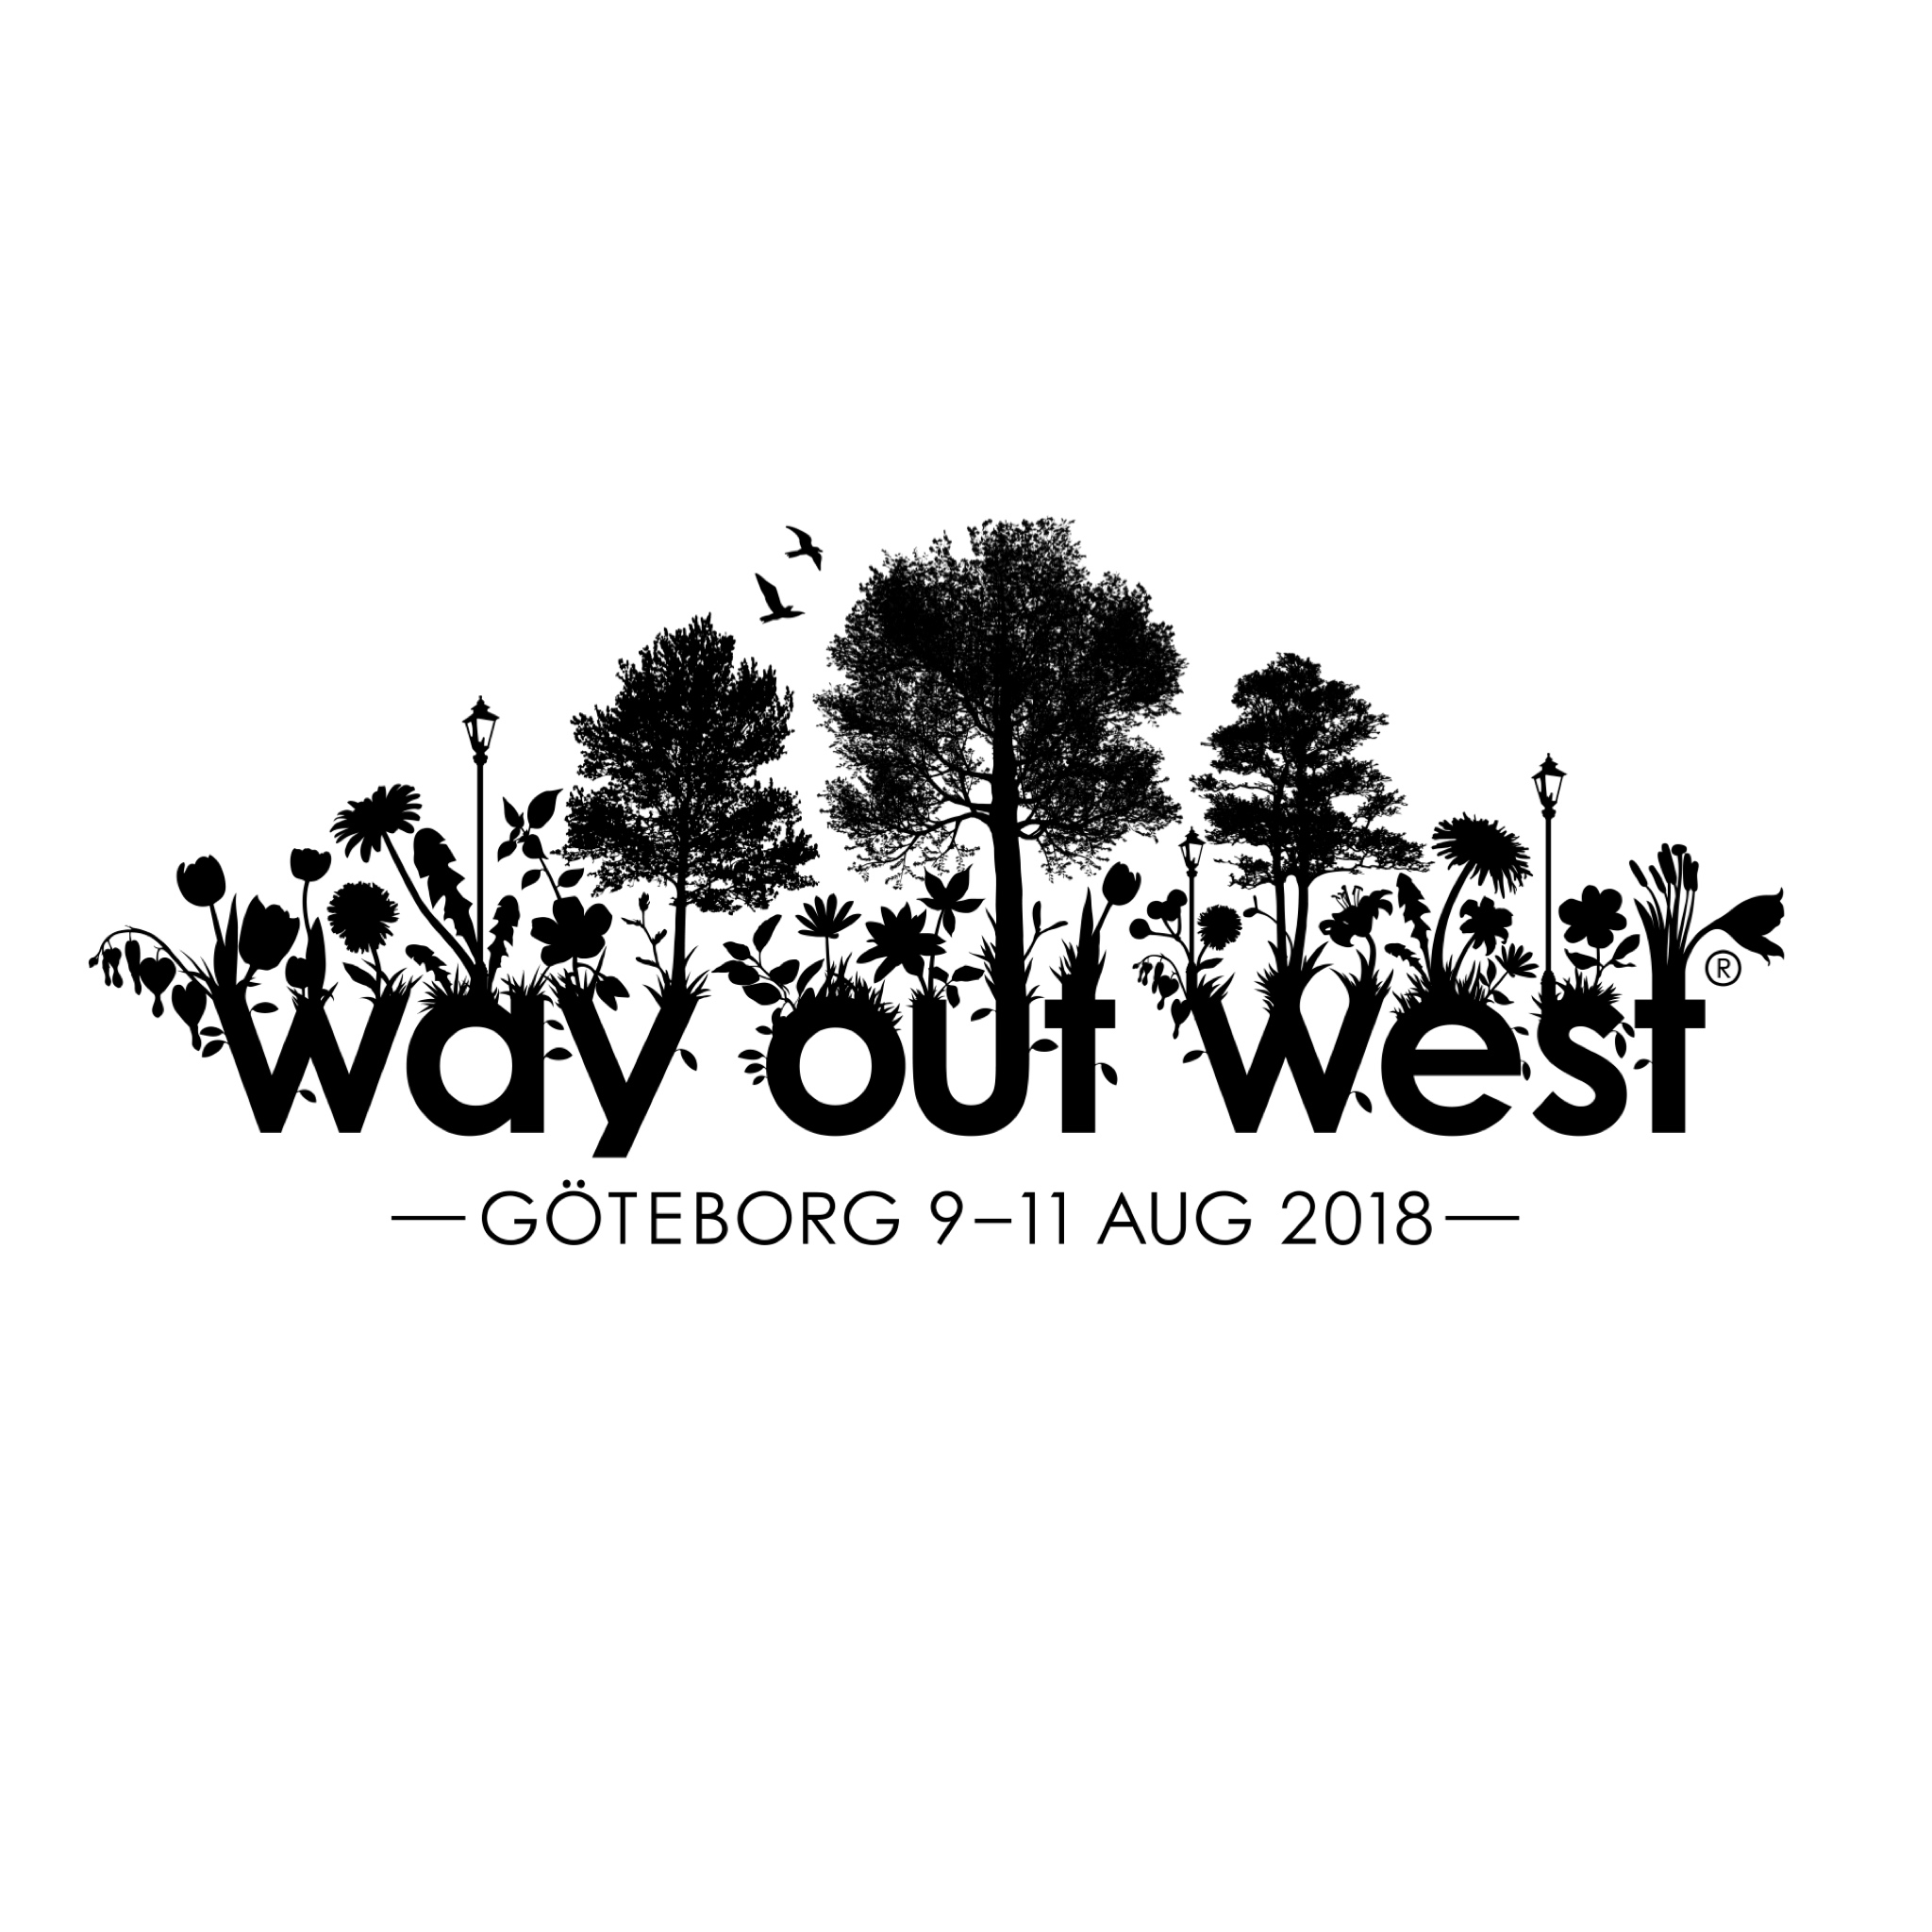 way out west logo.JPG